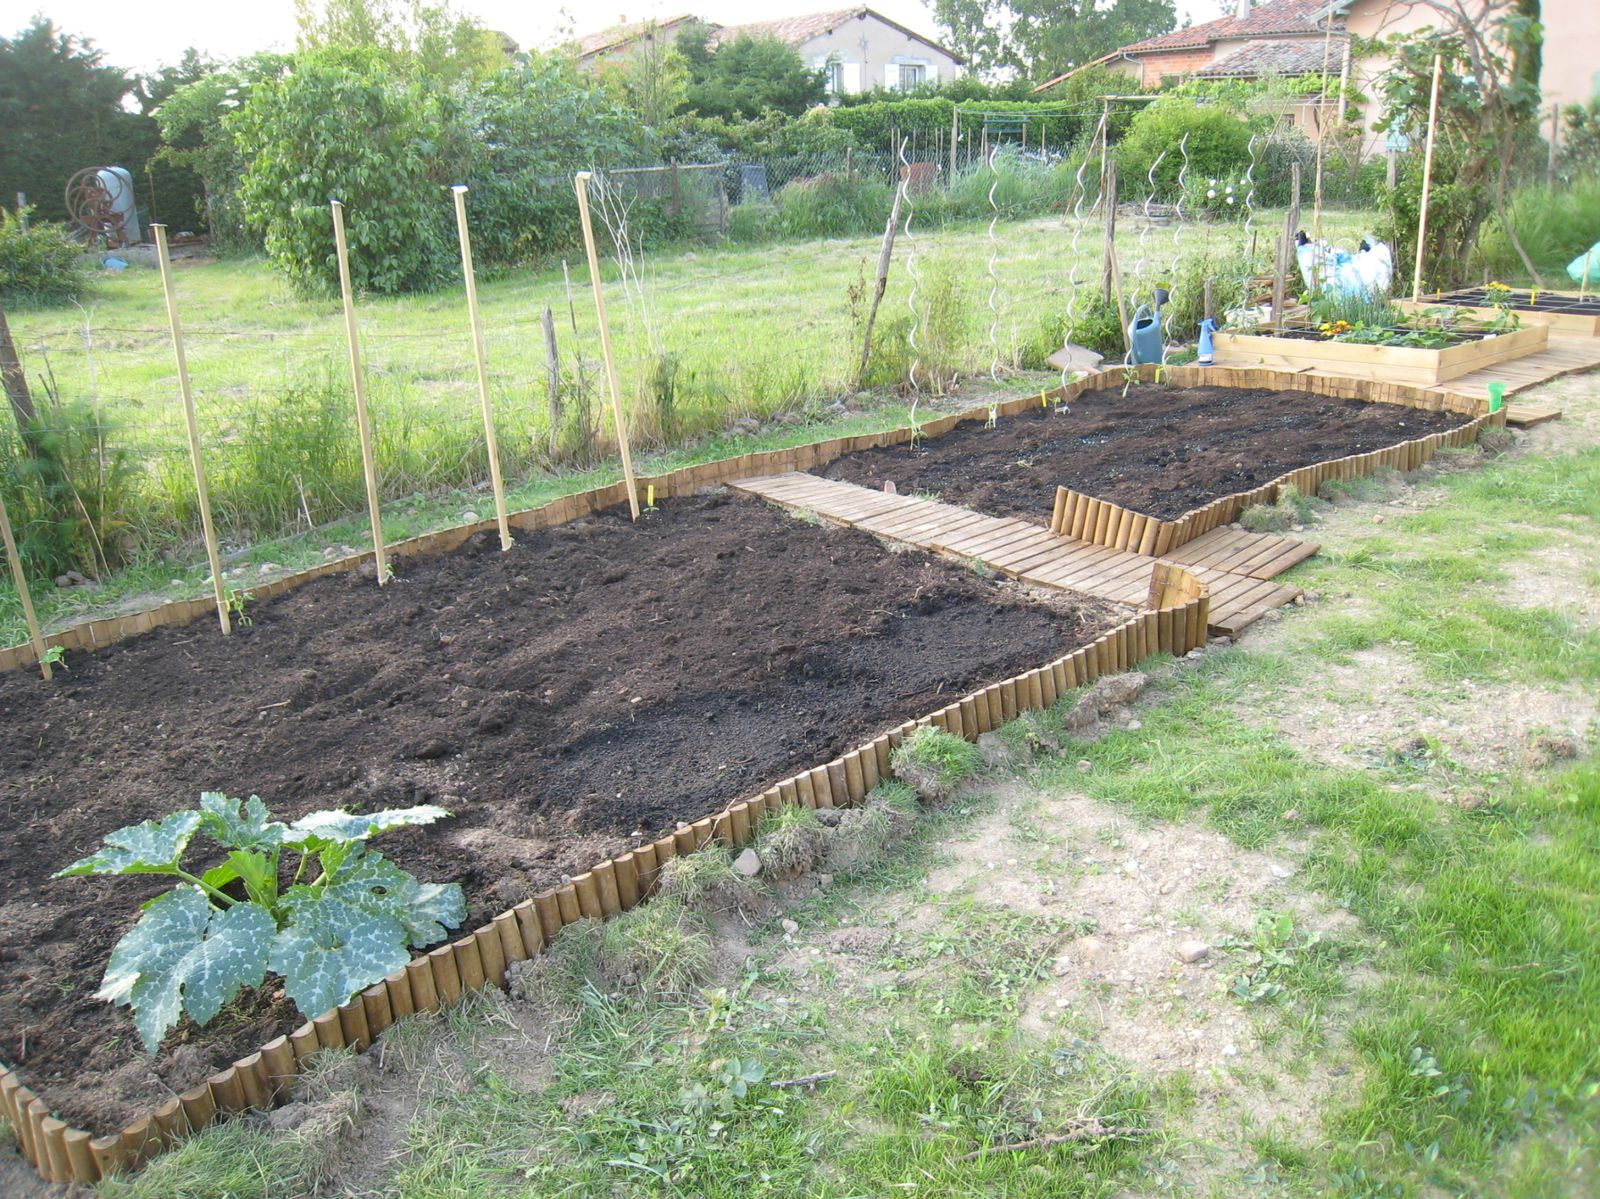 Am nagement du jardin potager le blog de nathalie for Amenagement jardin 100m2